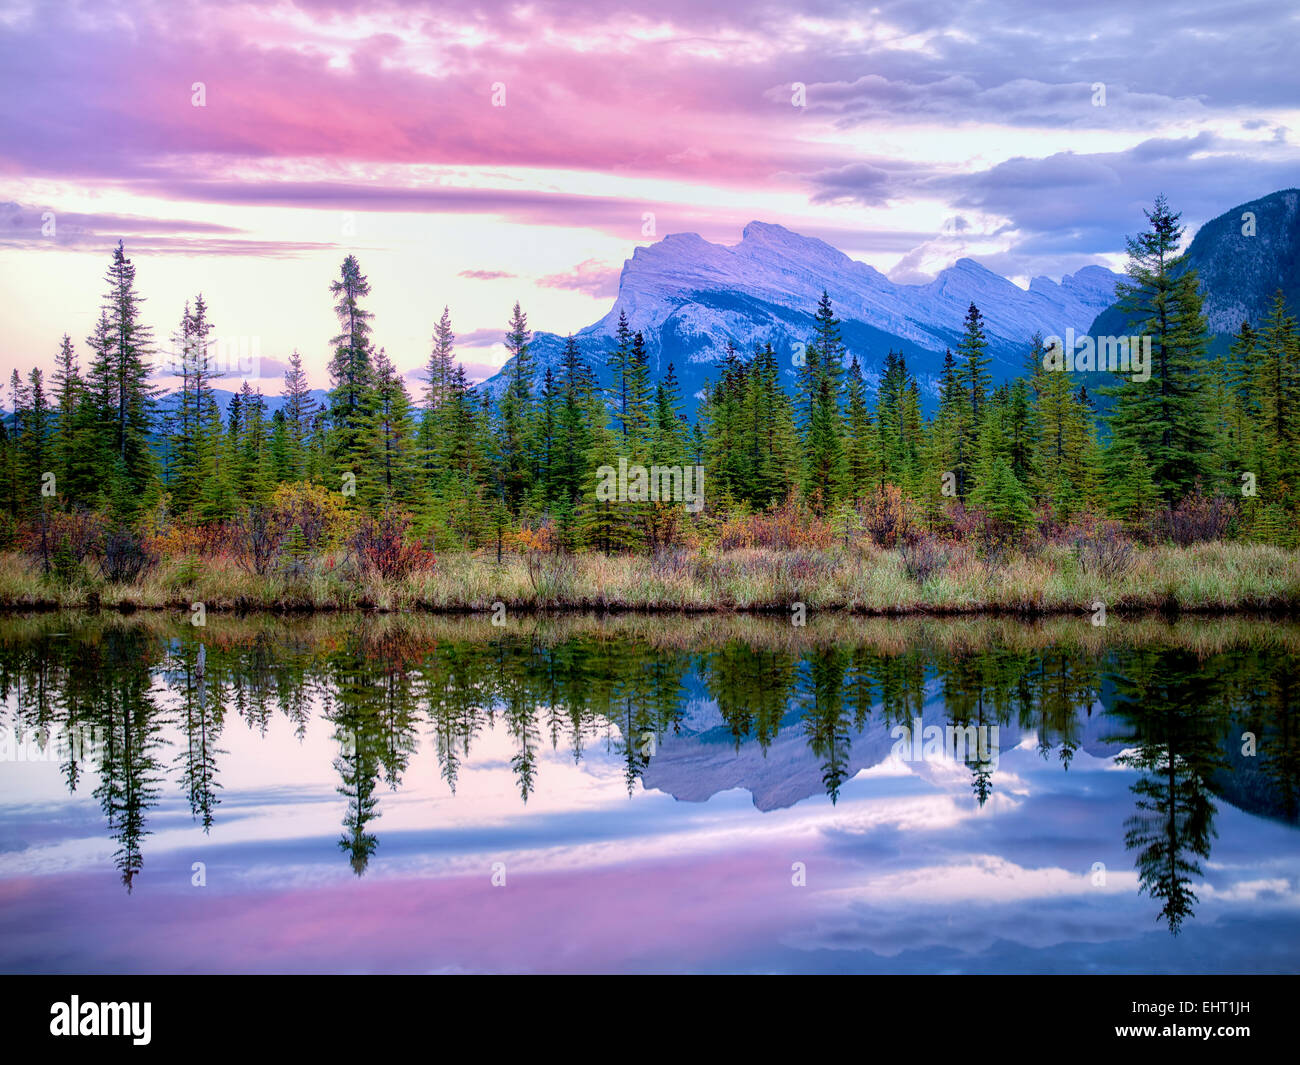 Vermillion Lakes and Mt. Rundle with sunset reflection. Banff National Park, Alberta Canada - Stock Image